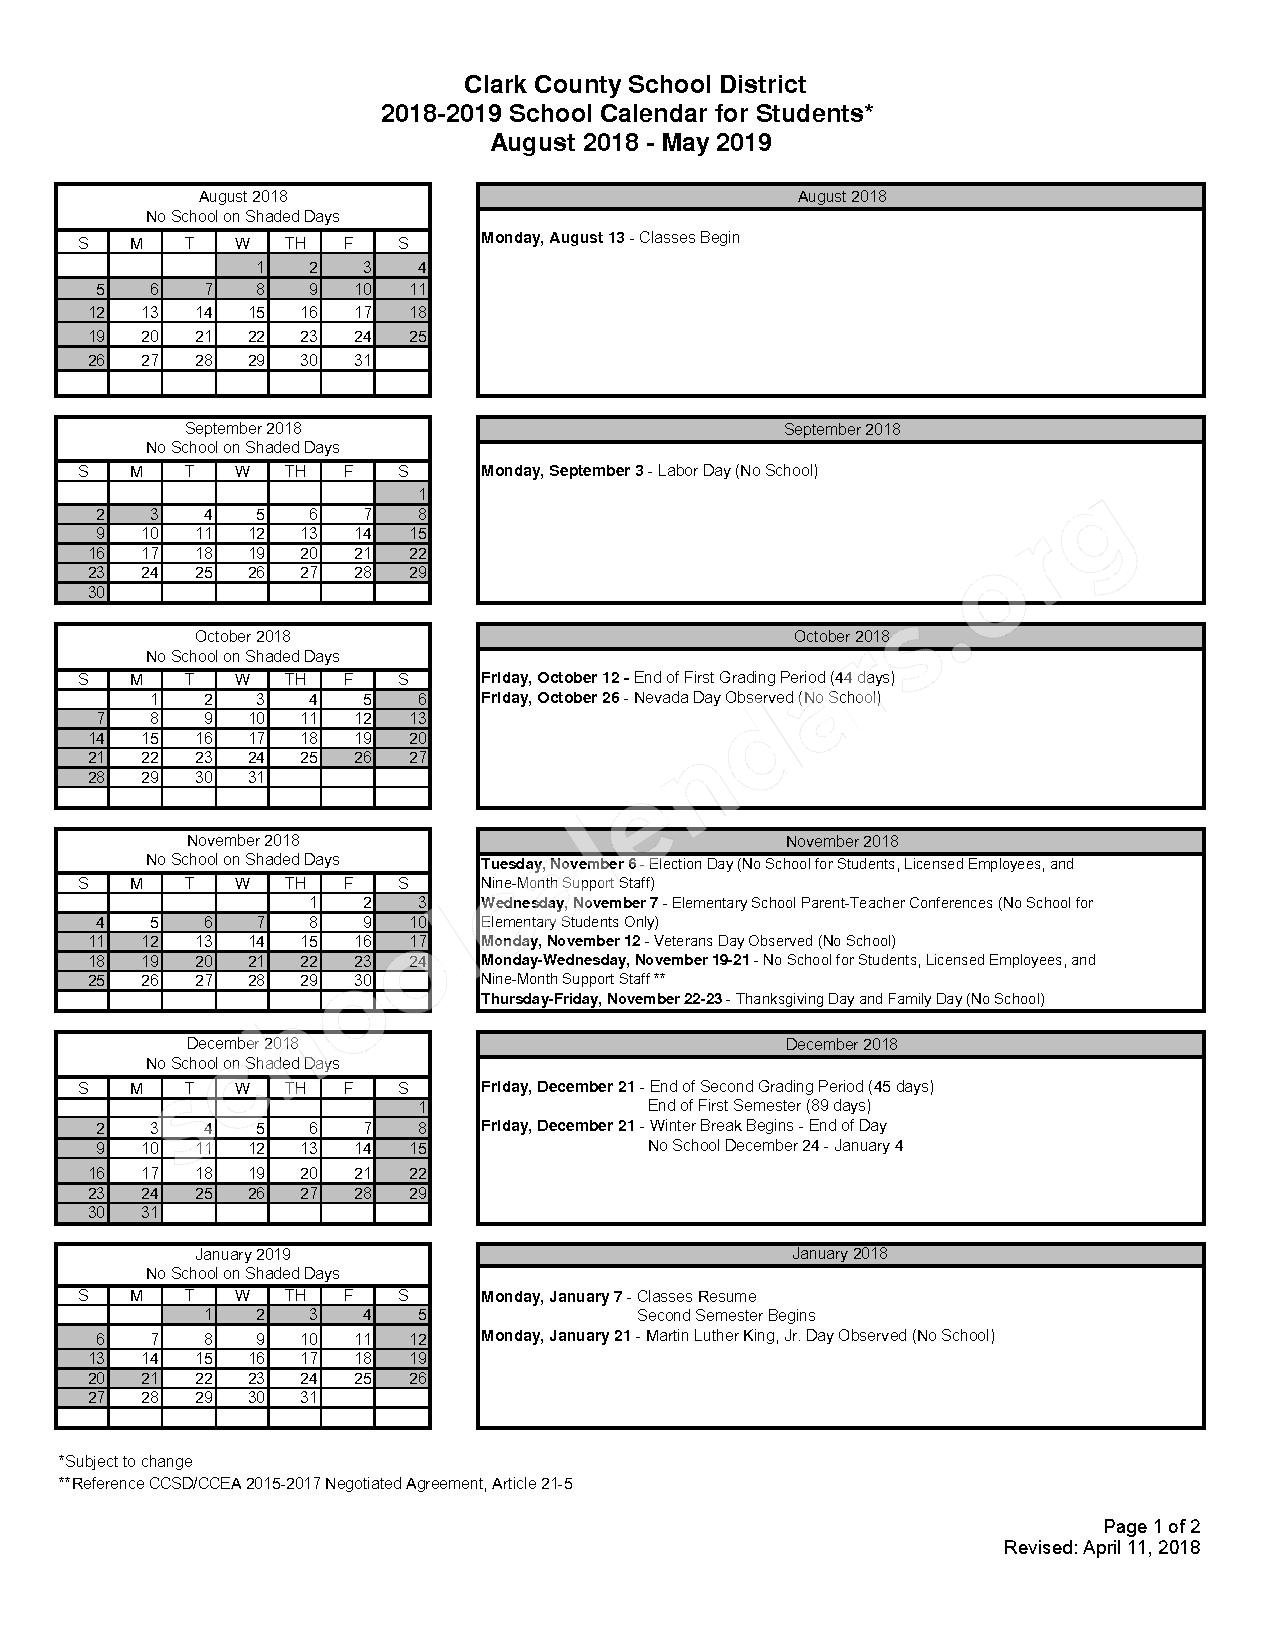 2018 - 2019 School Calendar for Students – Miley Achievement Center Elementary School – page 1